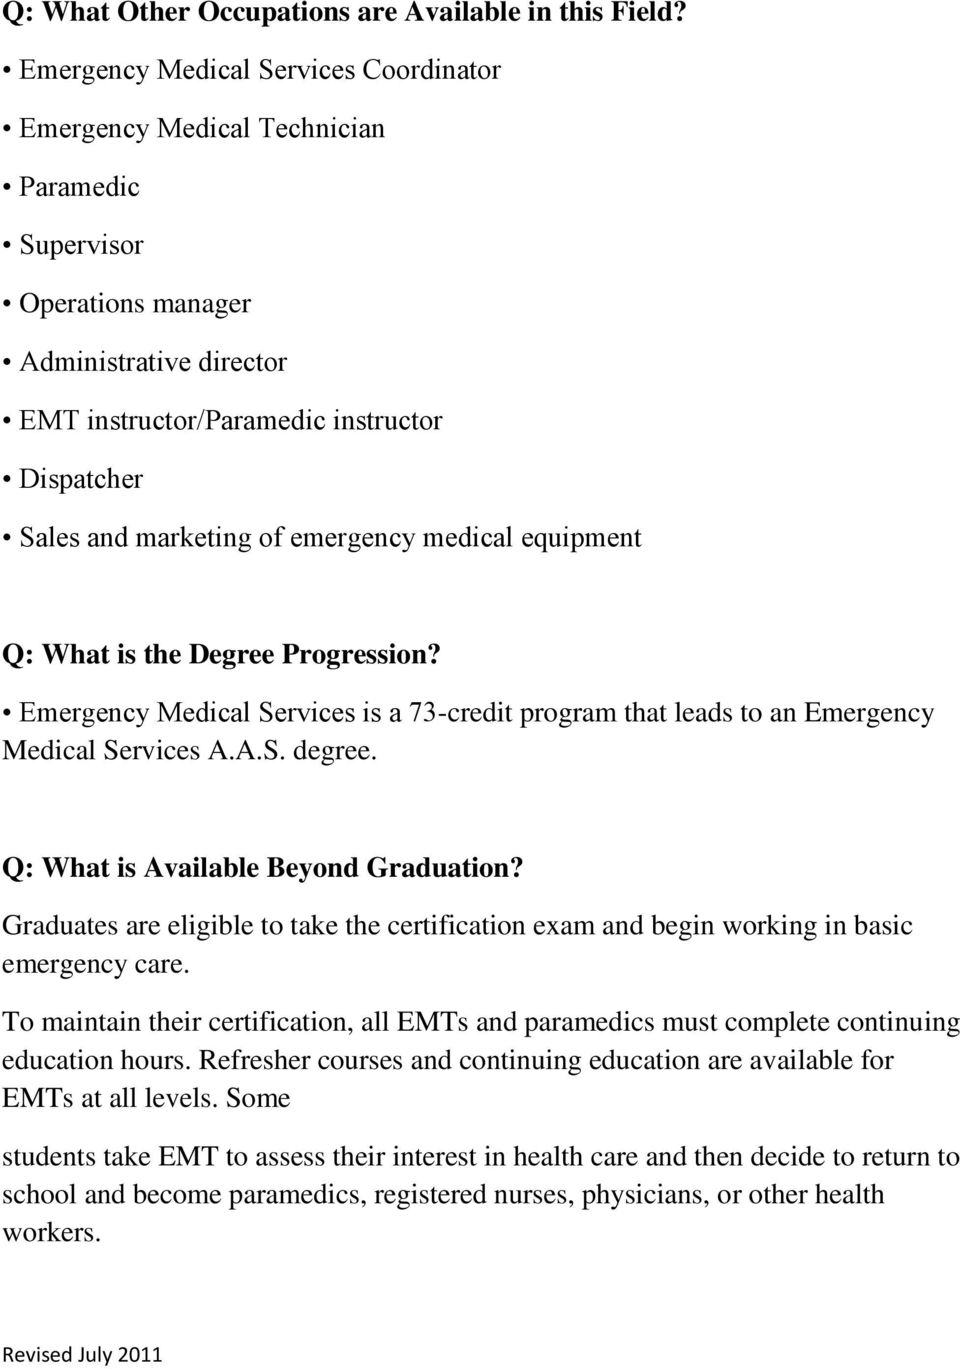 of emergency medical equipment Q: What is the Degree Progression? Emergency Medical Services is a 73-credit program that leads to an Emergency Medical Services A.A.S. degree.